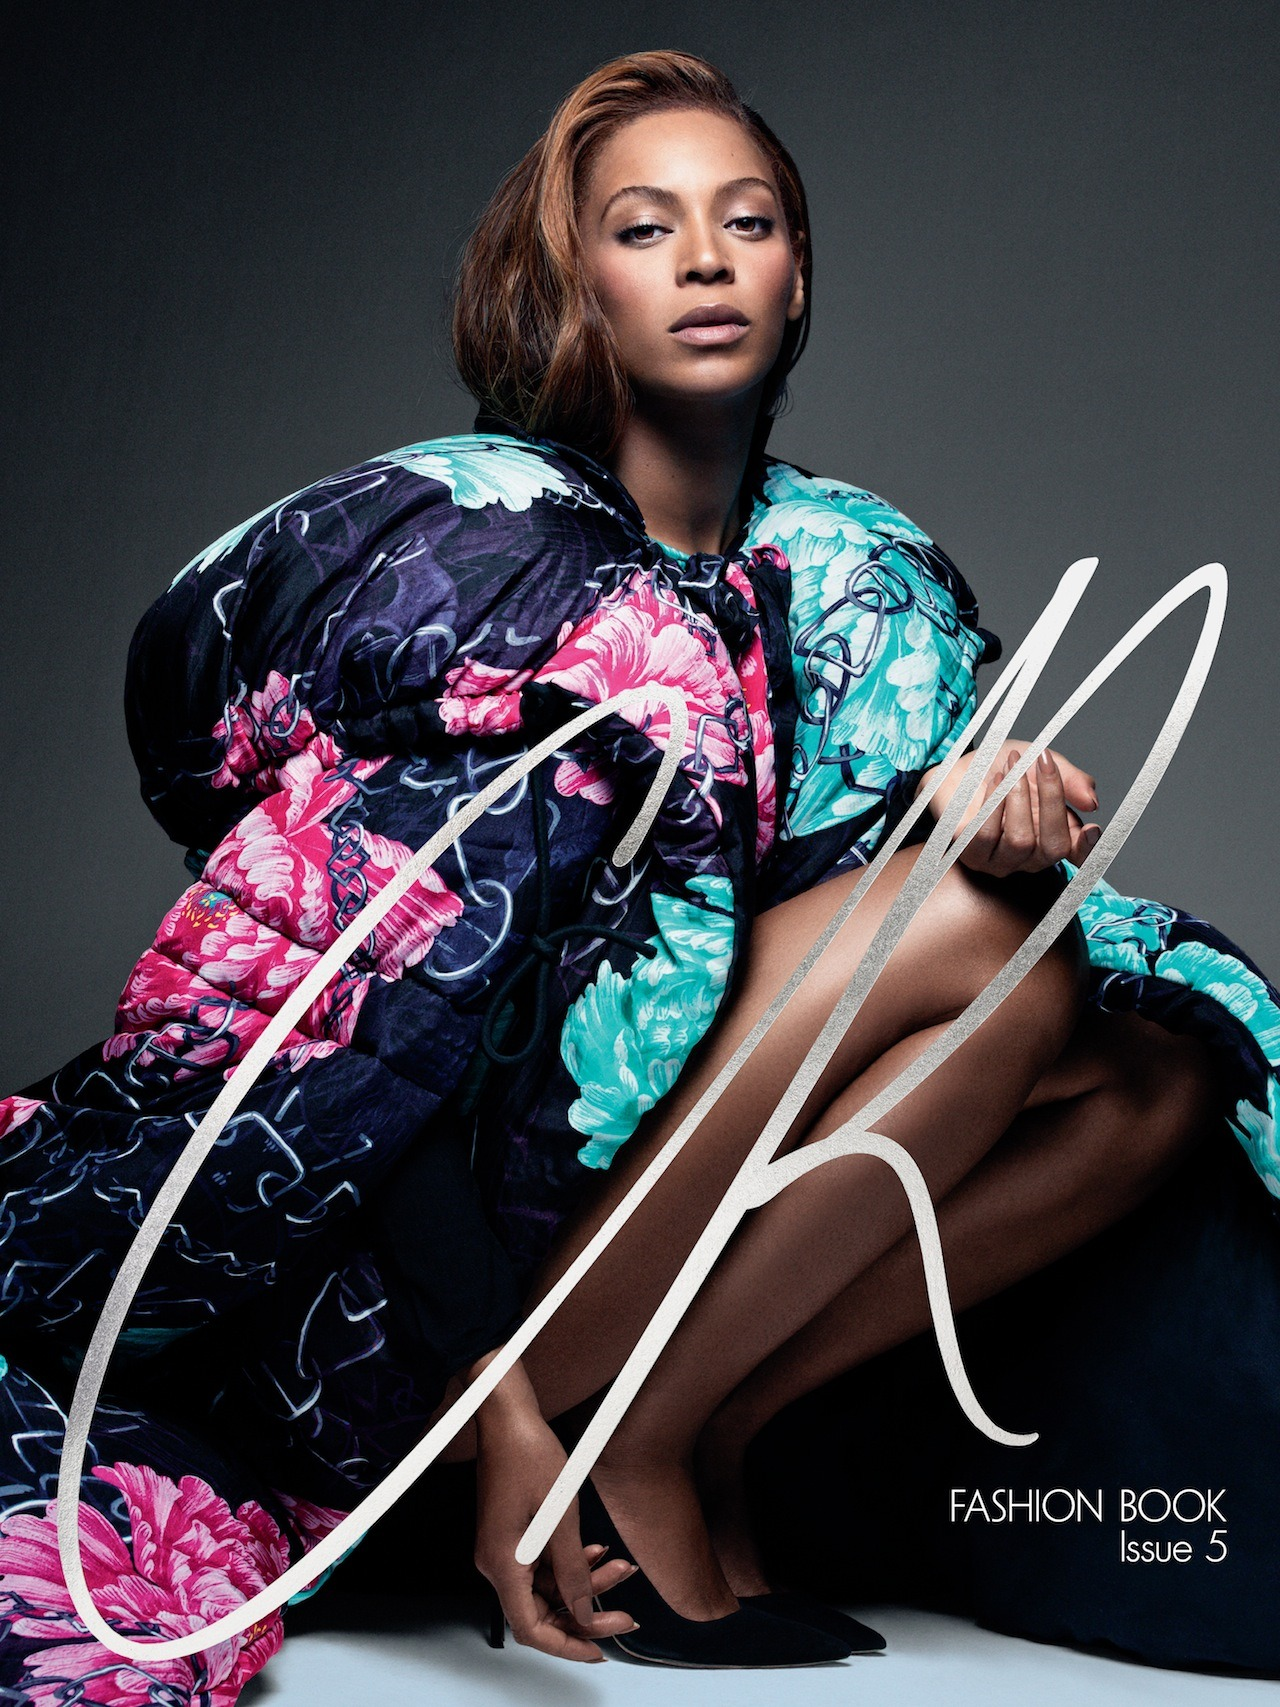 ISSUE 5: QUEEN B Today, our fifth Fashion Book cover is revealed [[MORE]]   Photographs Pierre Debusschere Guest creative direction Riccardo Tisci  The empress of pop meets a force of fashion. In her first collaboration with Carine Roitfeld, the ever-changing Beyoncé expresses her many moods, manners, auras, and multifaceted characters. All hail!